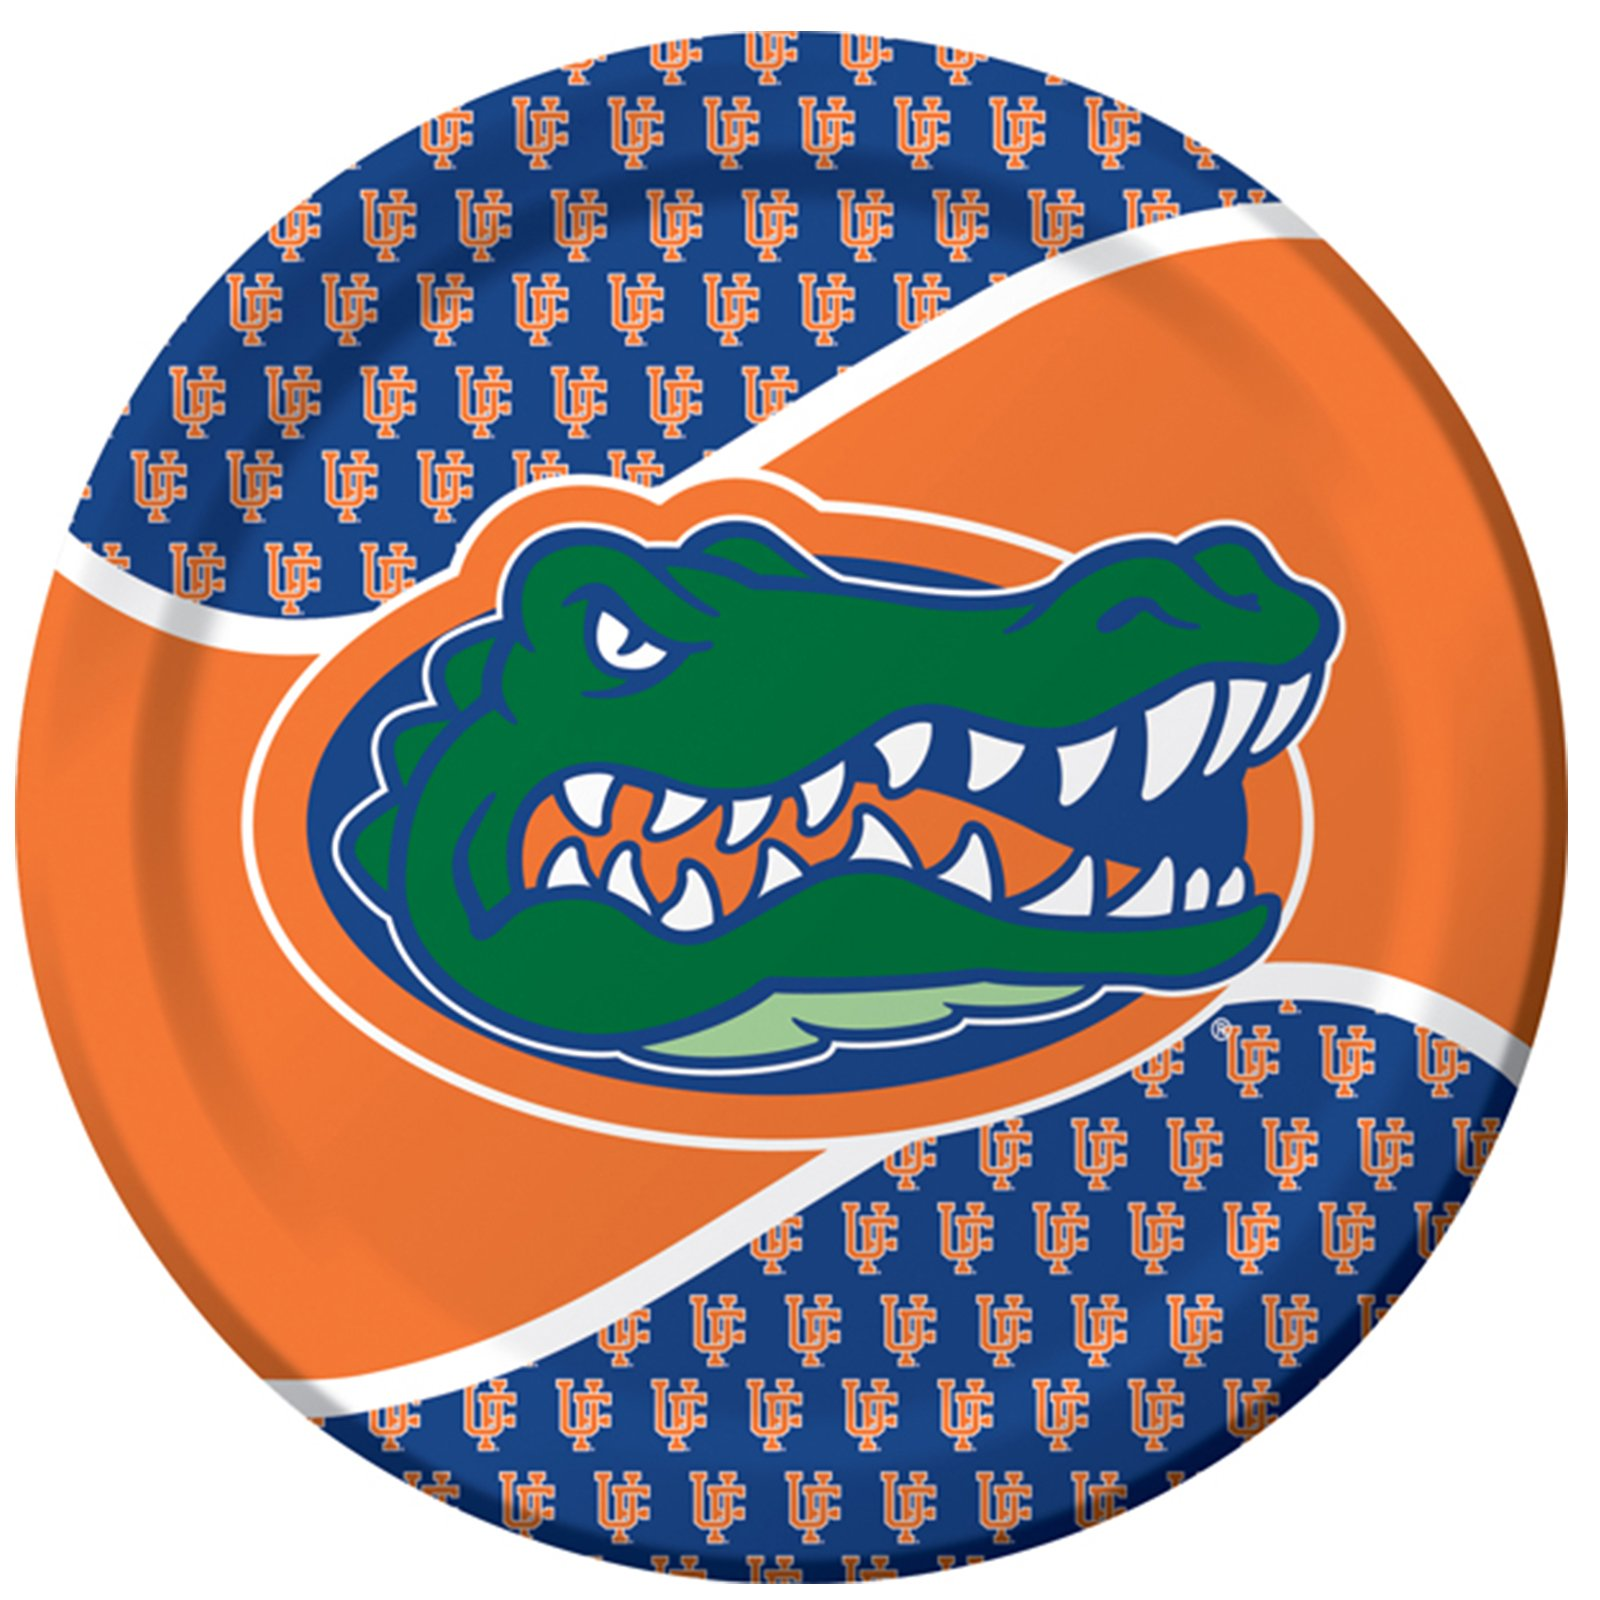 Florida Gators - Dinner Plates (8 count)